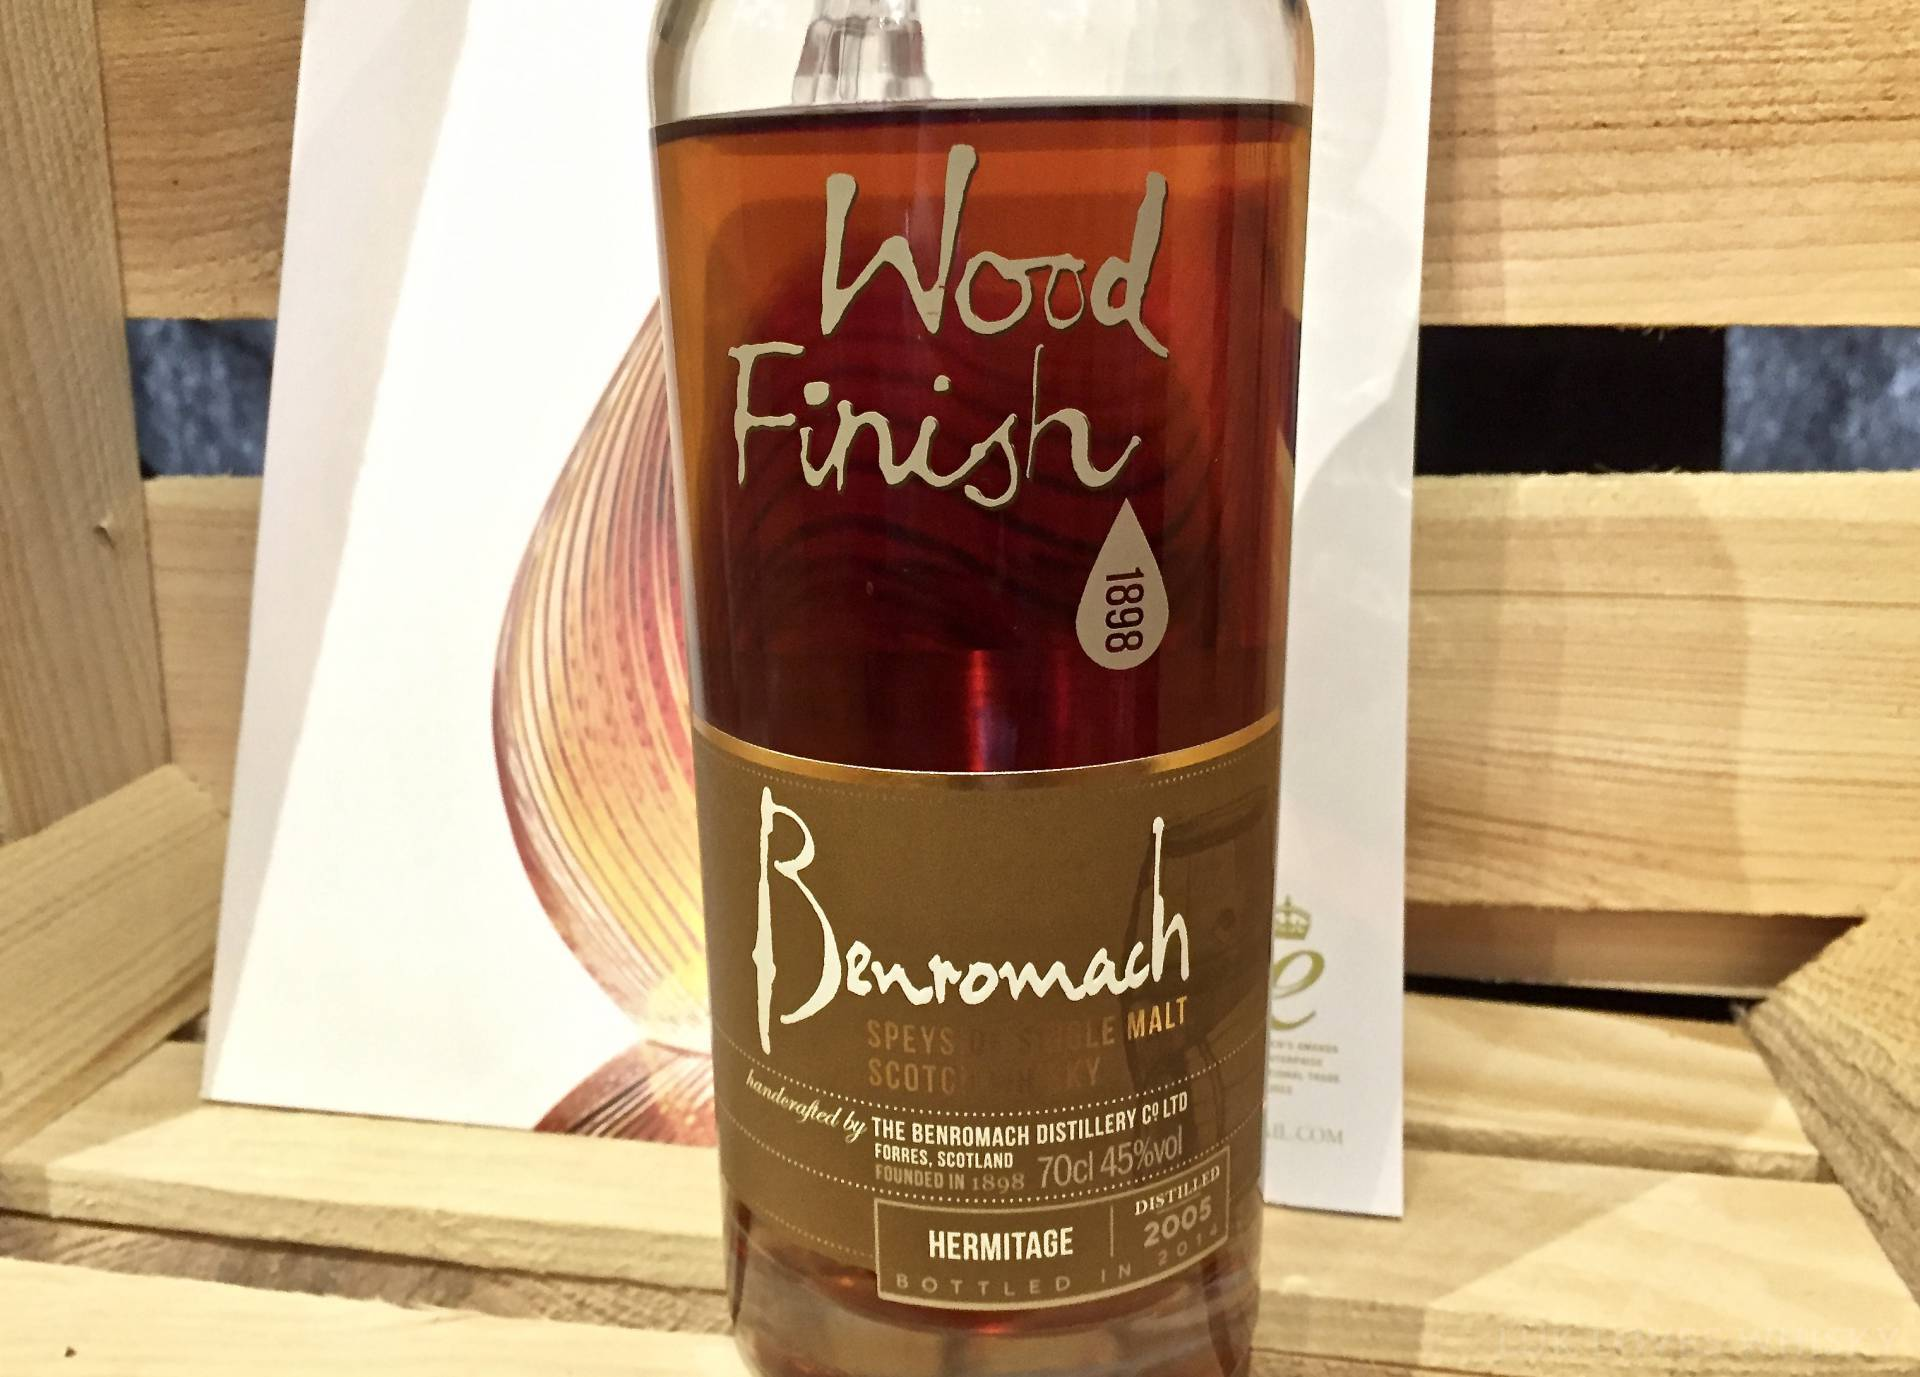 Benromach Wood Finish Hermitage 2005/2014